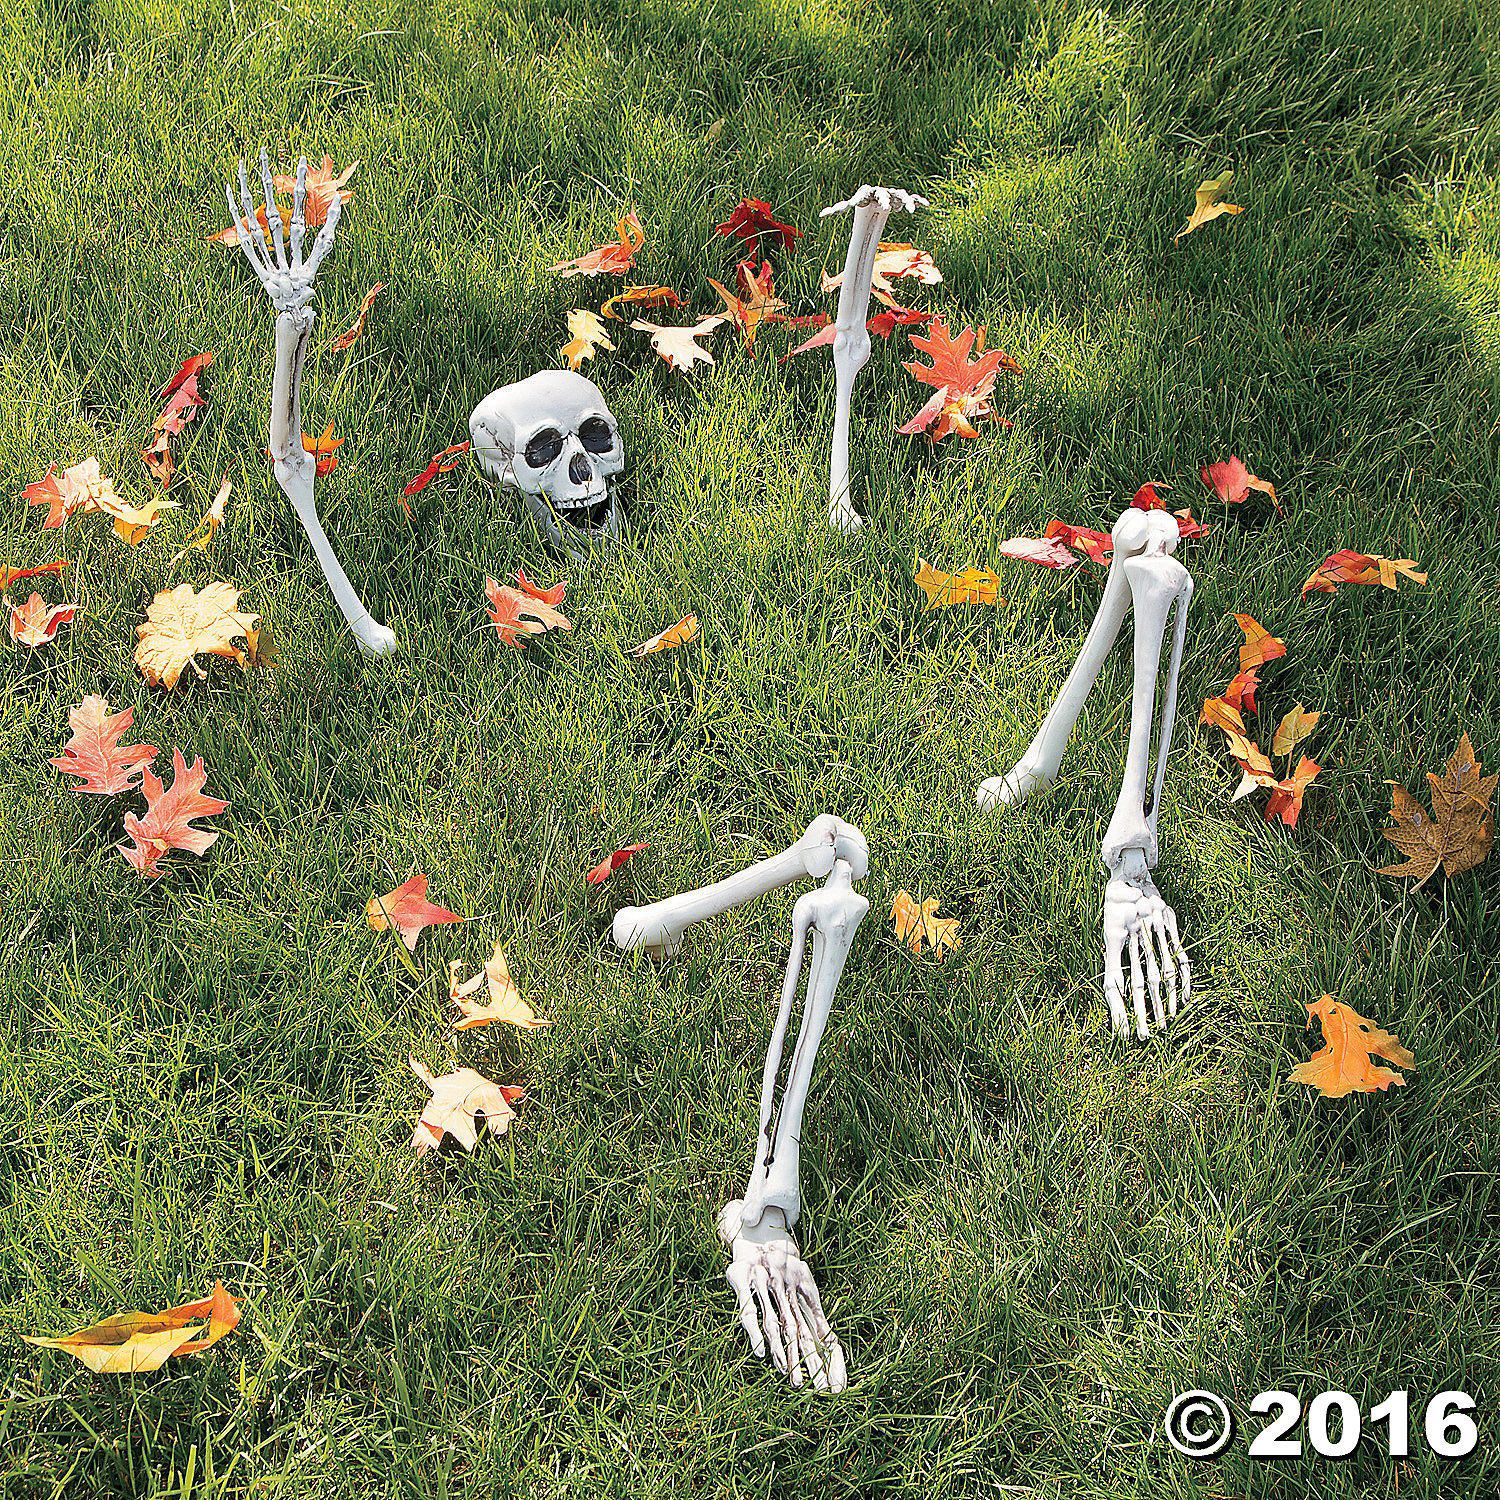 Skeleton Groundbreaker Prop Life Size Halloween NEW Haunted House - Halloween Graveyard Decorations